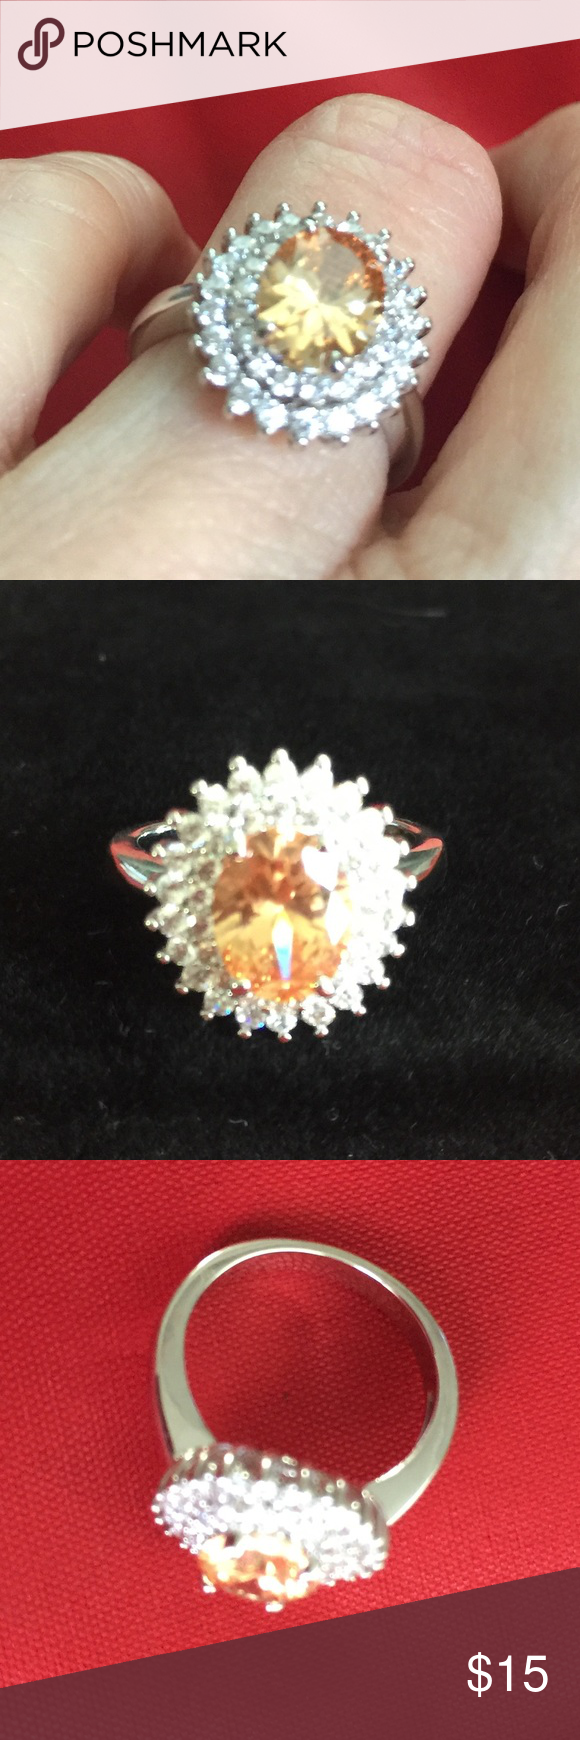 🆕 Silver tone Amber CZ oval stone clear 4.75 5 New without tags Silver tone color with Amber color oval CZ center stone with clear accent stones. Measures 4.75 on ring stick, fits my ring finger which is a size 5. Not sure of metal type. ‼️Firm unless bundled‼️ Jewelry Rings